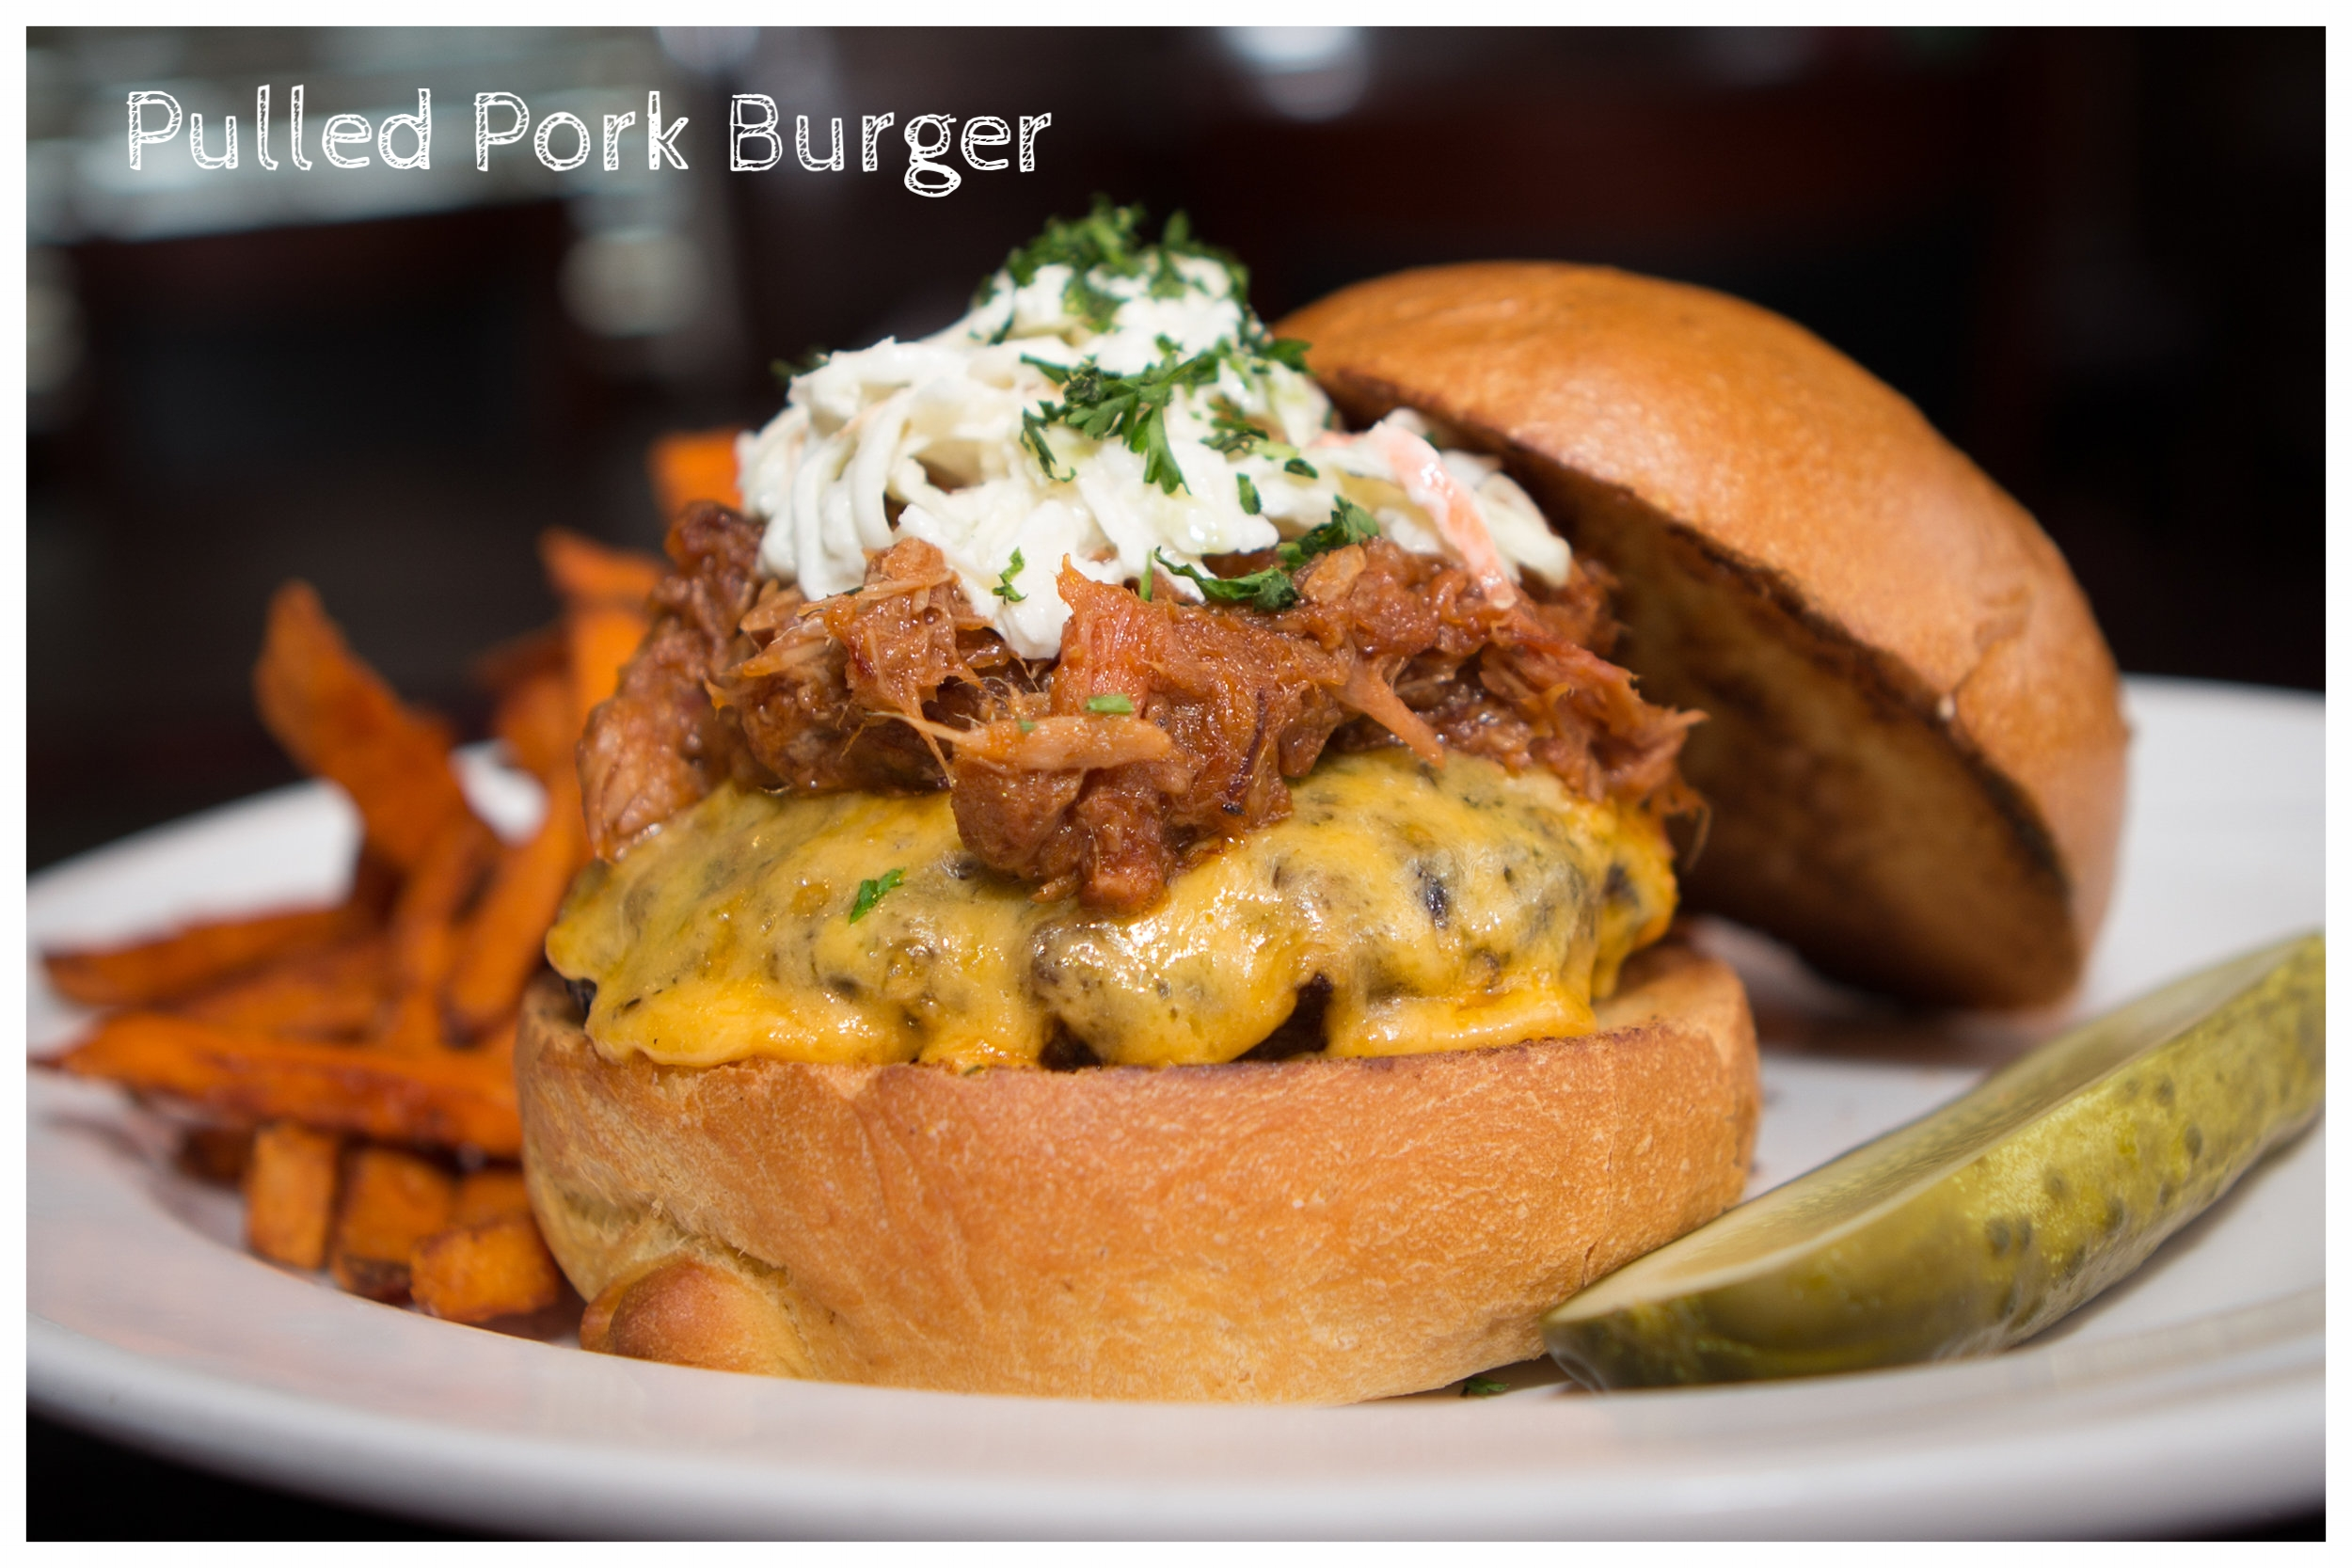 Pulled Pork Burger (side).jpg